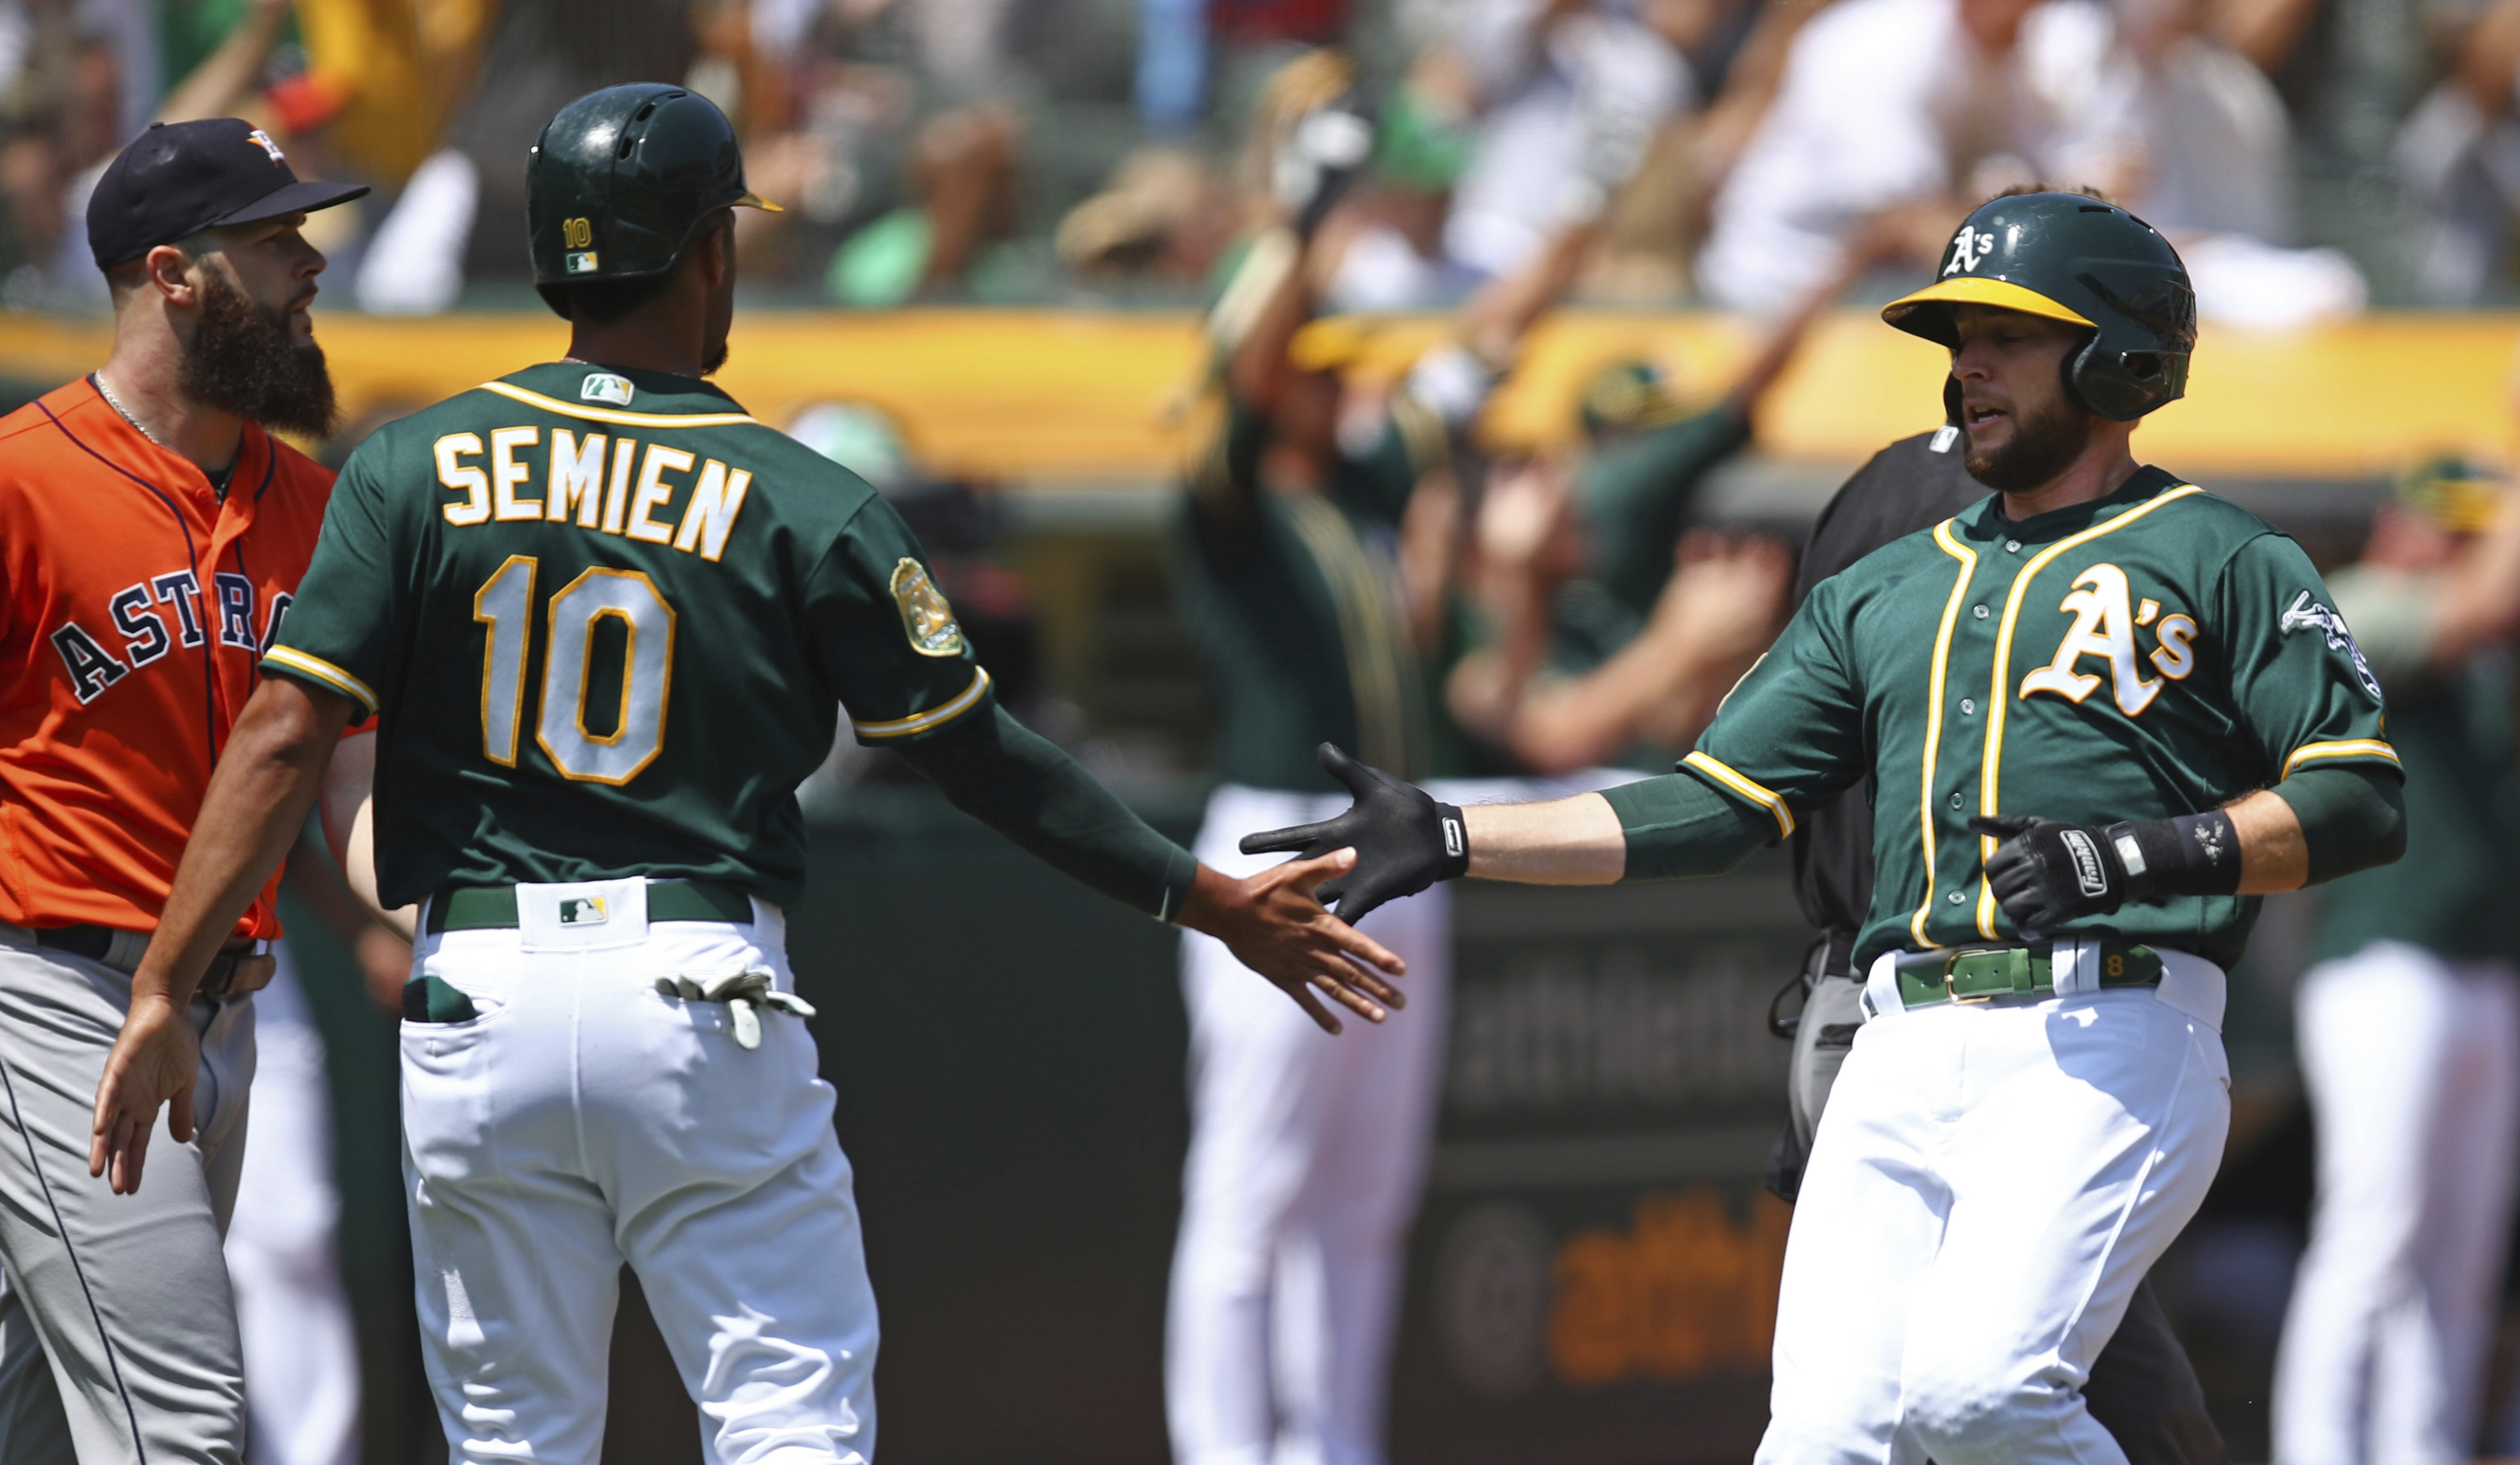 Marcus Semien and Jed Lowrie